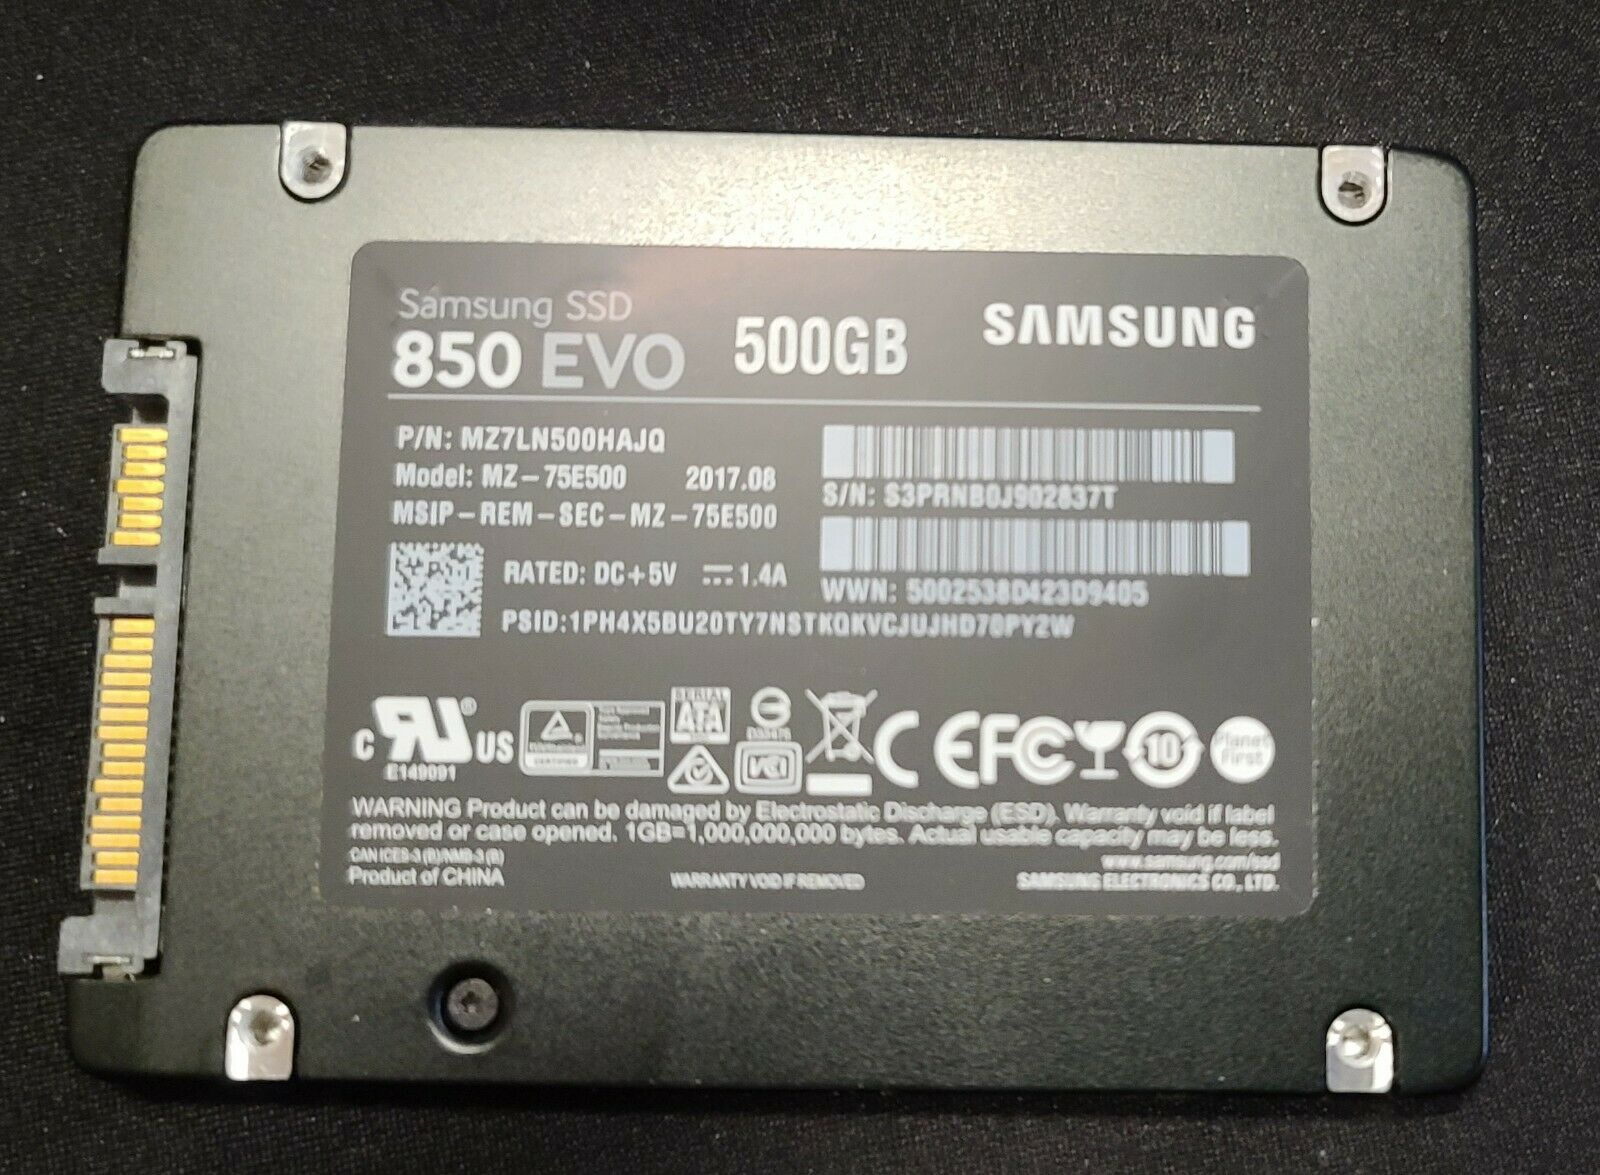 Samsung 850 EVO 500 GB Internal Solid State Drive. Buy it now for 49.95